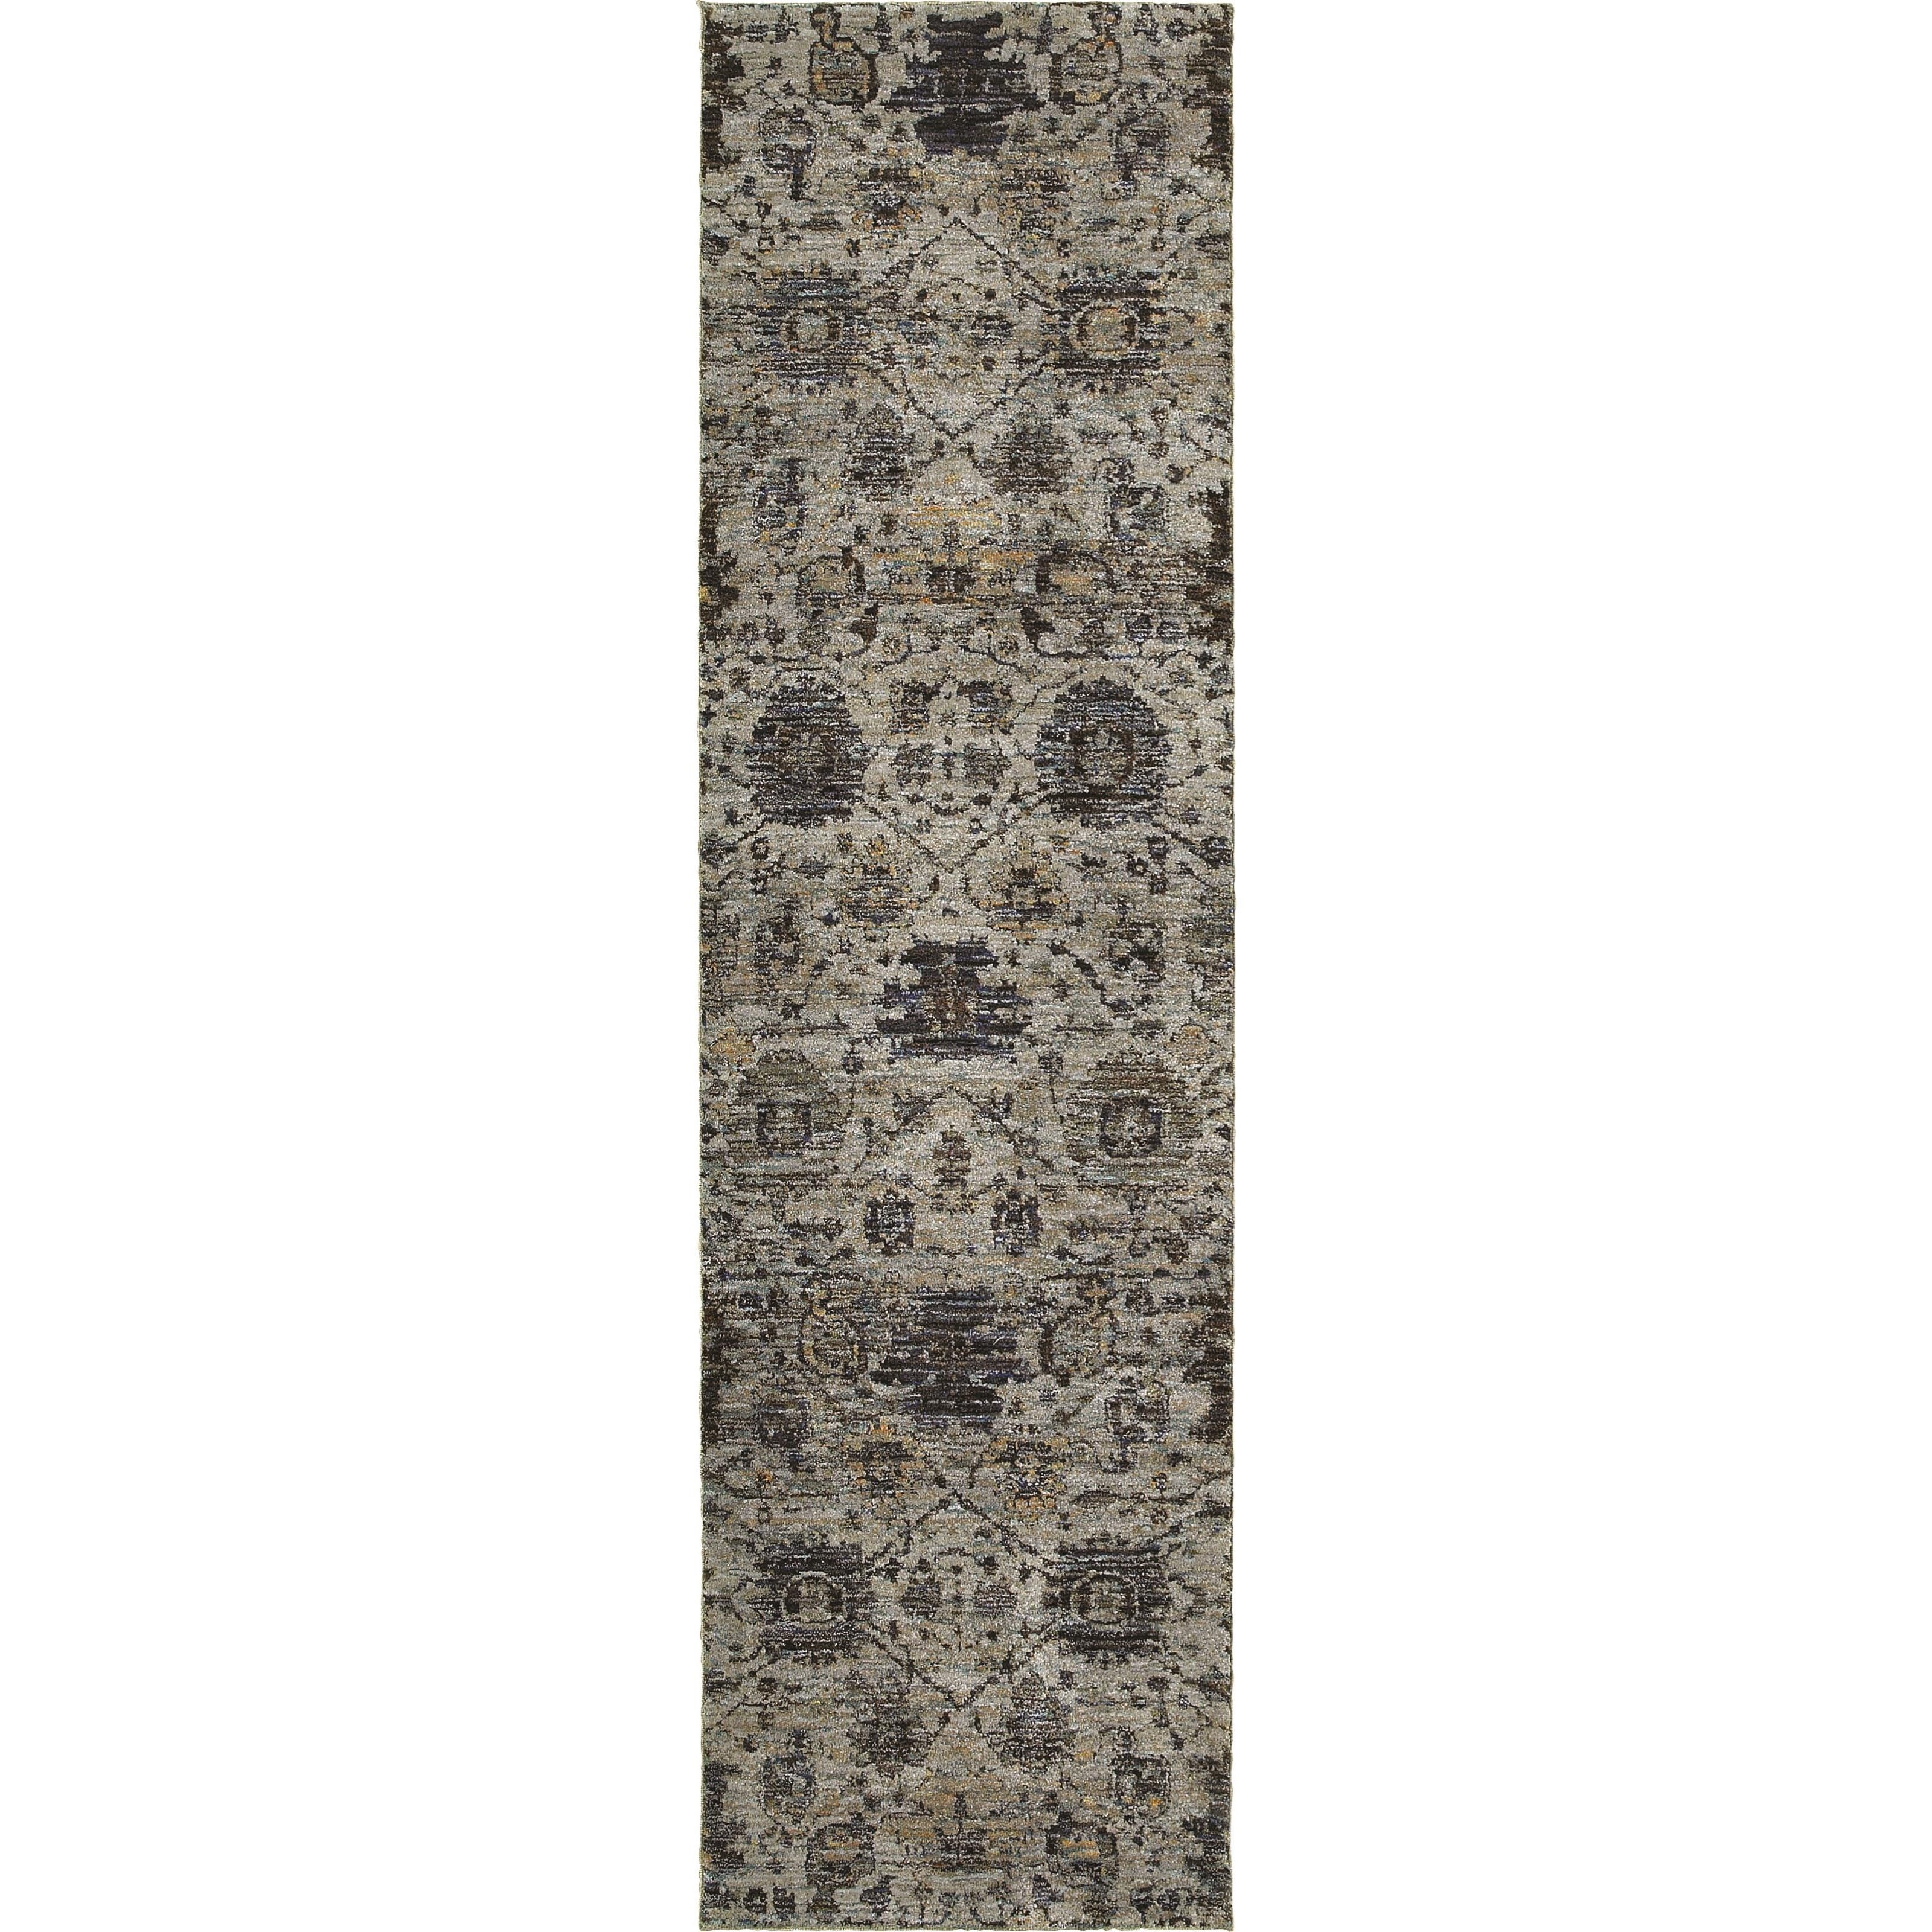 "Andorra 2' 3"" X  8' 0"" Casual Blue/ Navy Runner Rug by Oriental Weavers at Steger's Furniture"